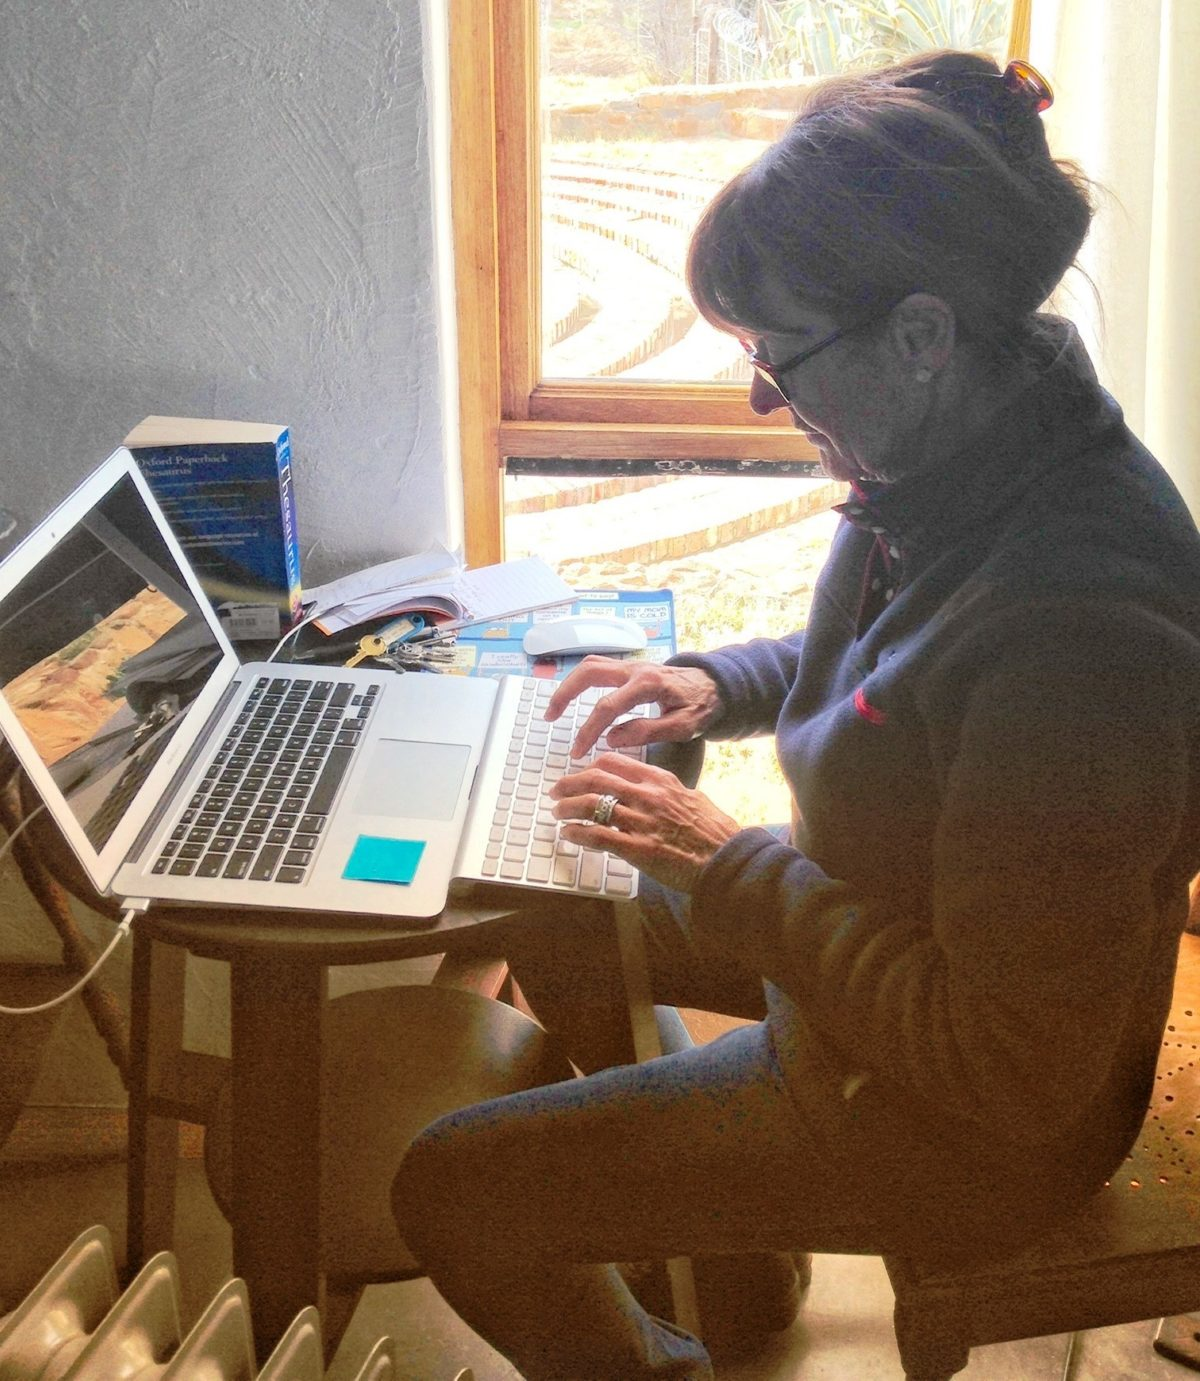 Jennifer Friedman working on 'The Messiah's Dream Machine' while staying at the Van der Post Writer's Retreat, Philippolis (Free State)